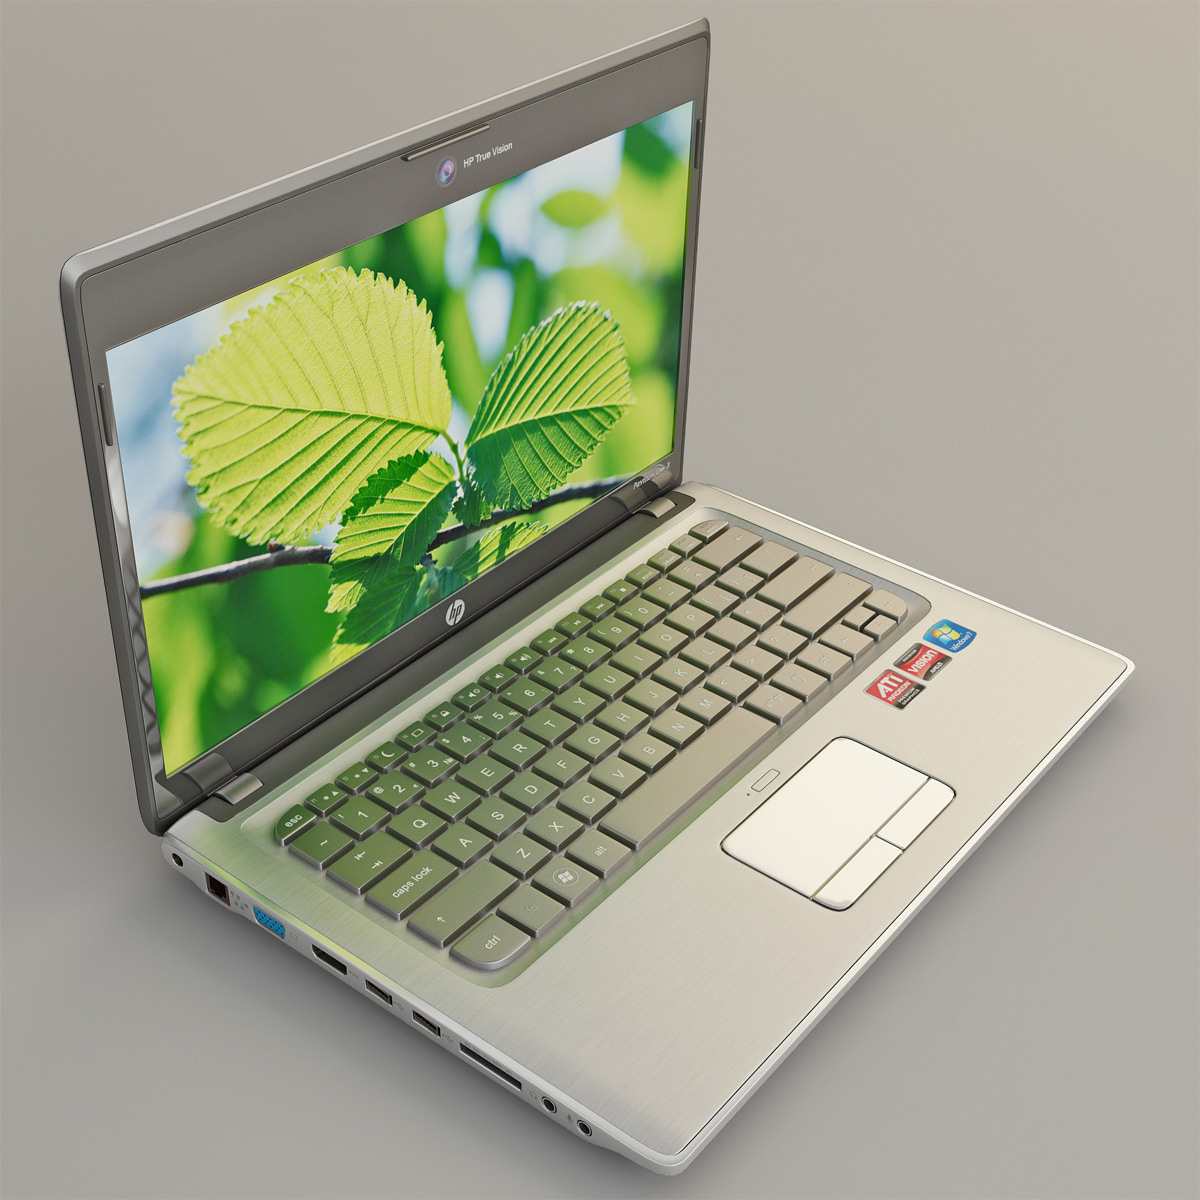 152476_Laptop_HP_Pavilion_001.jpg